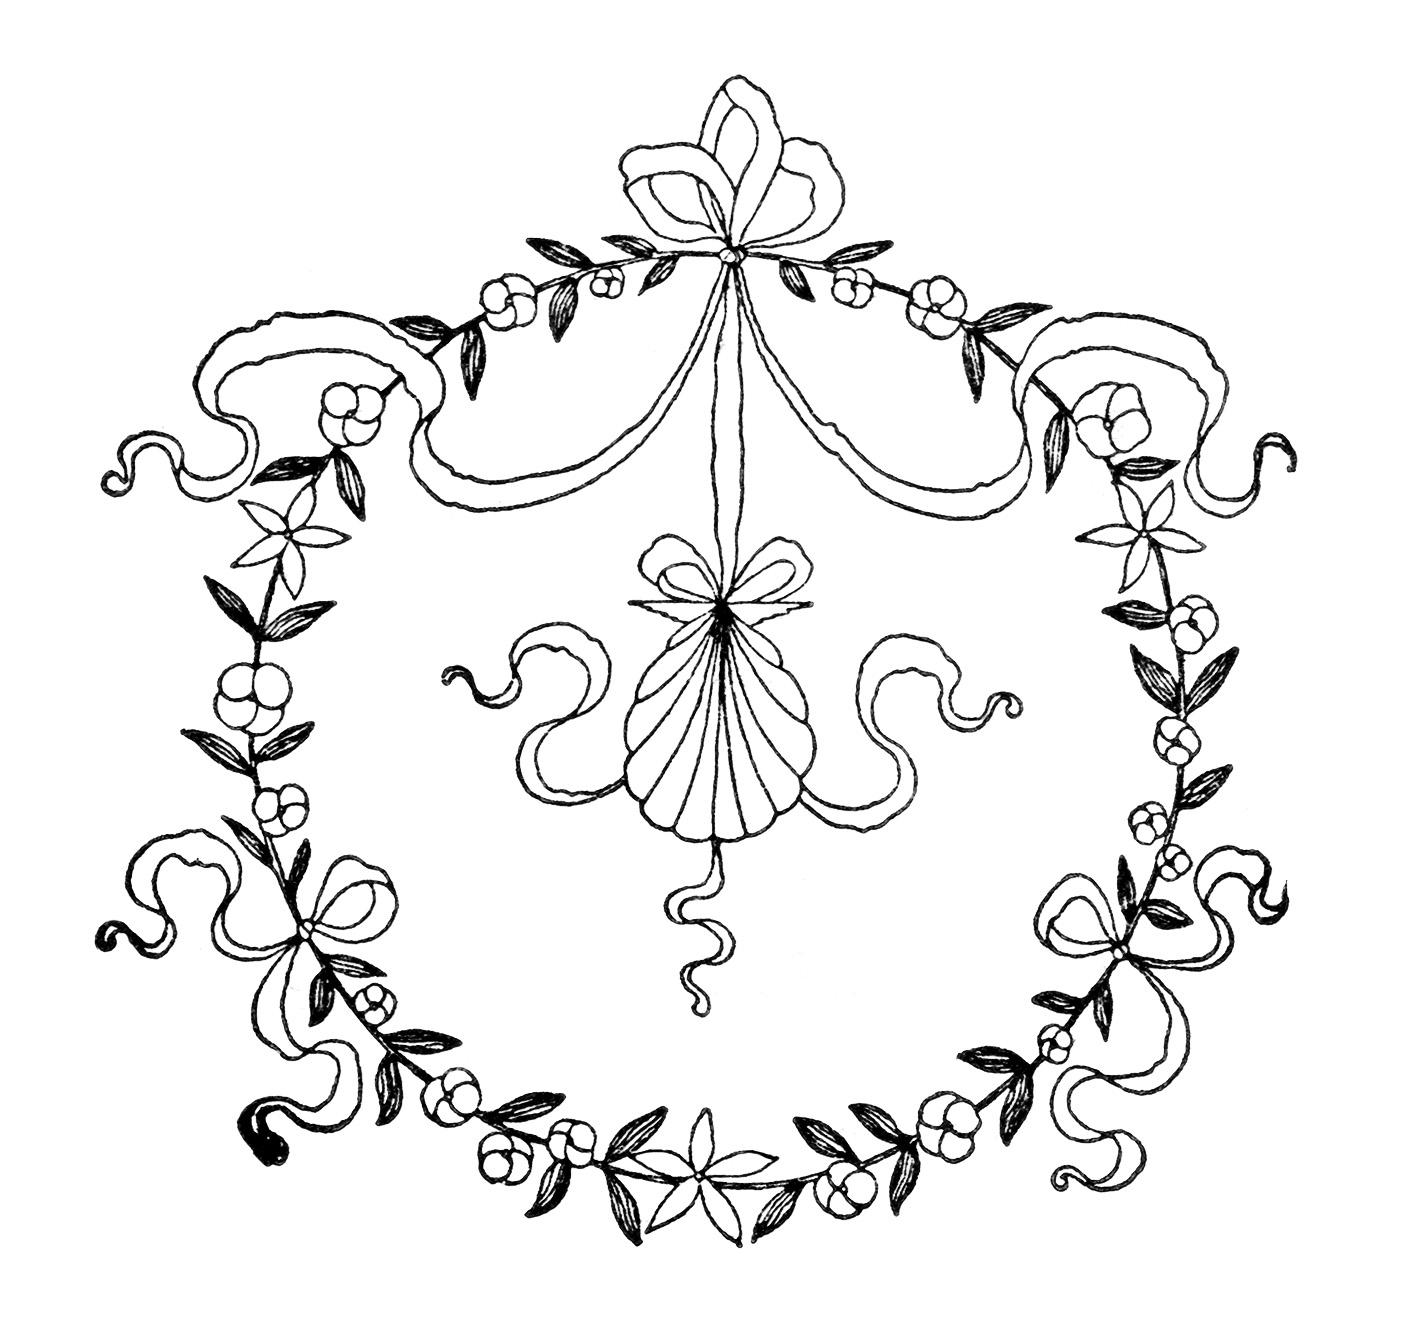 Vintage designs old design. Free clipart for embroidery